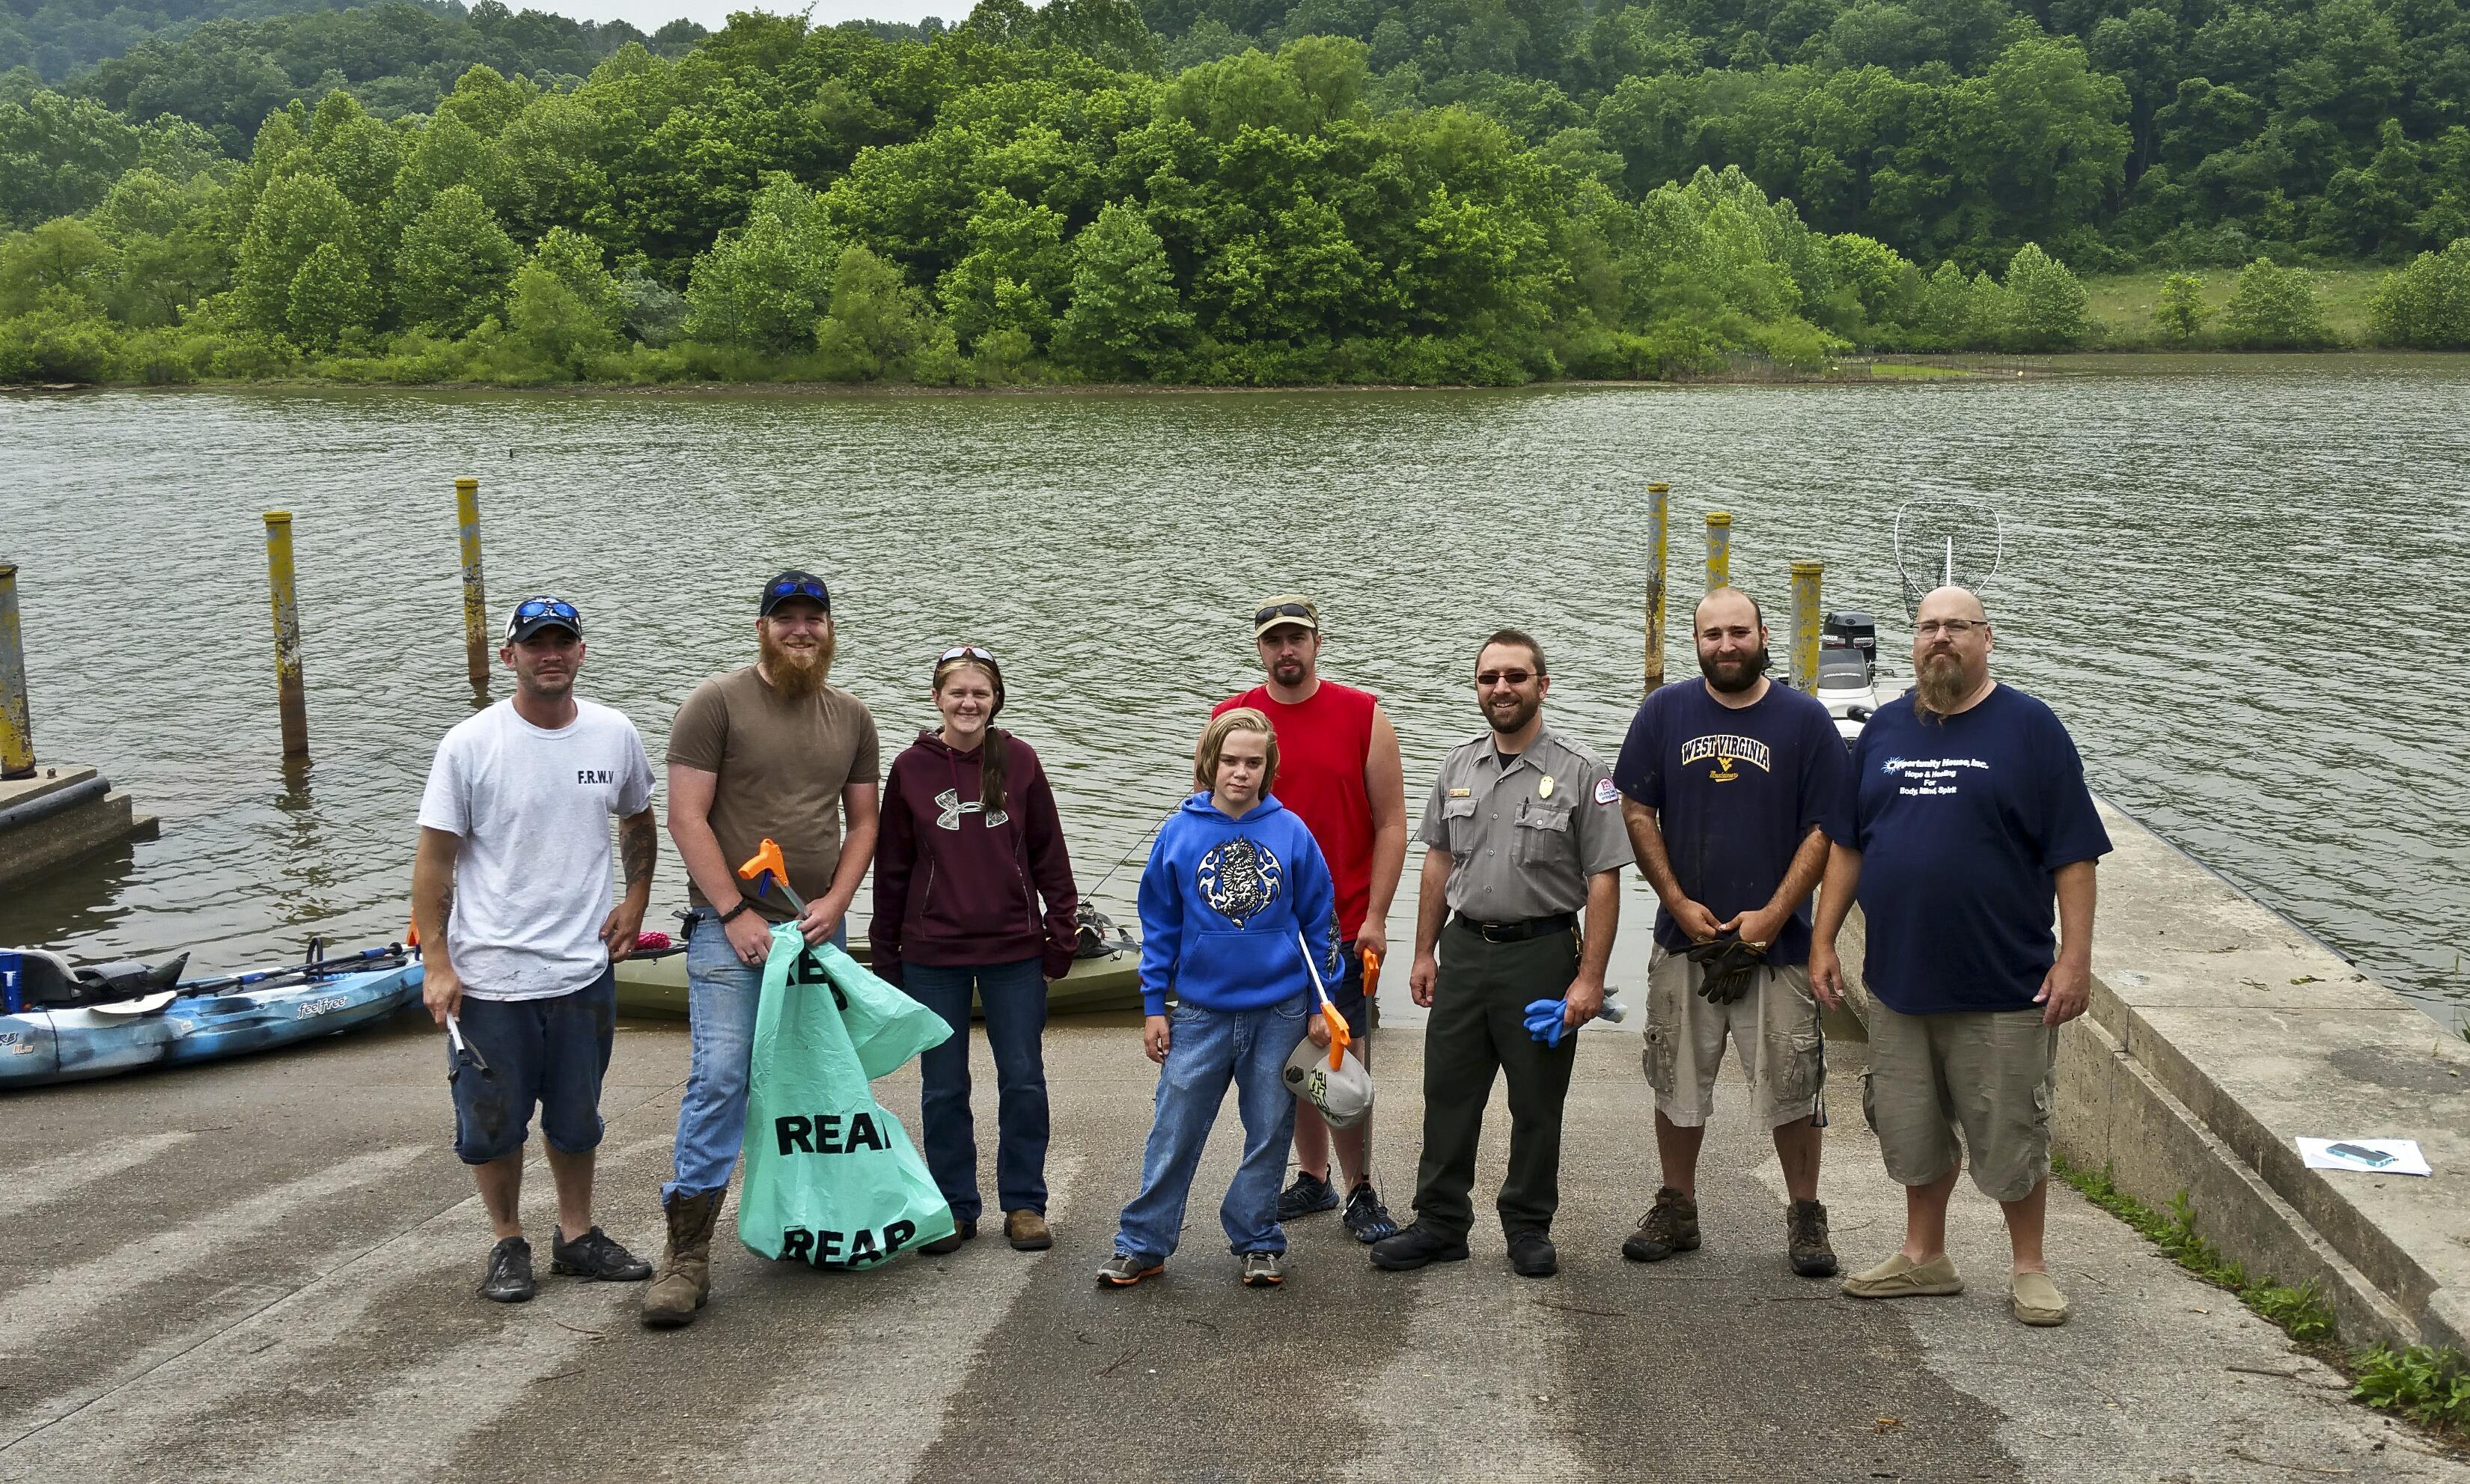 Fishing group helps to clean up stonewall pittsburgh for Jackson lake fishing